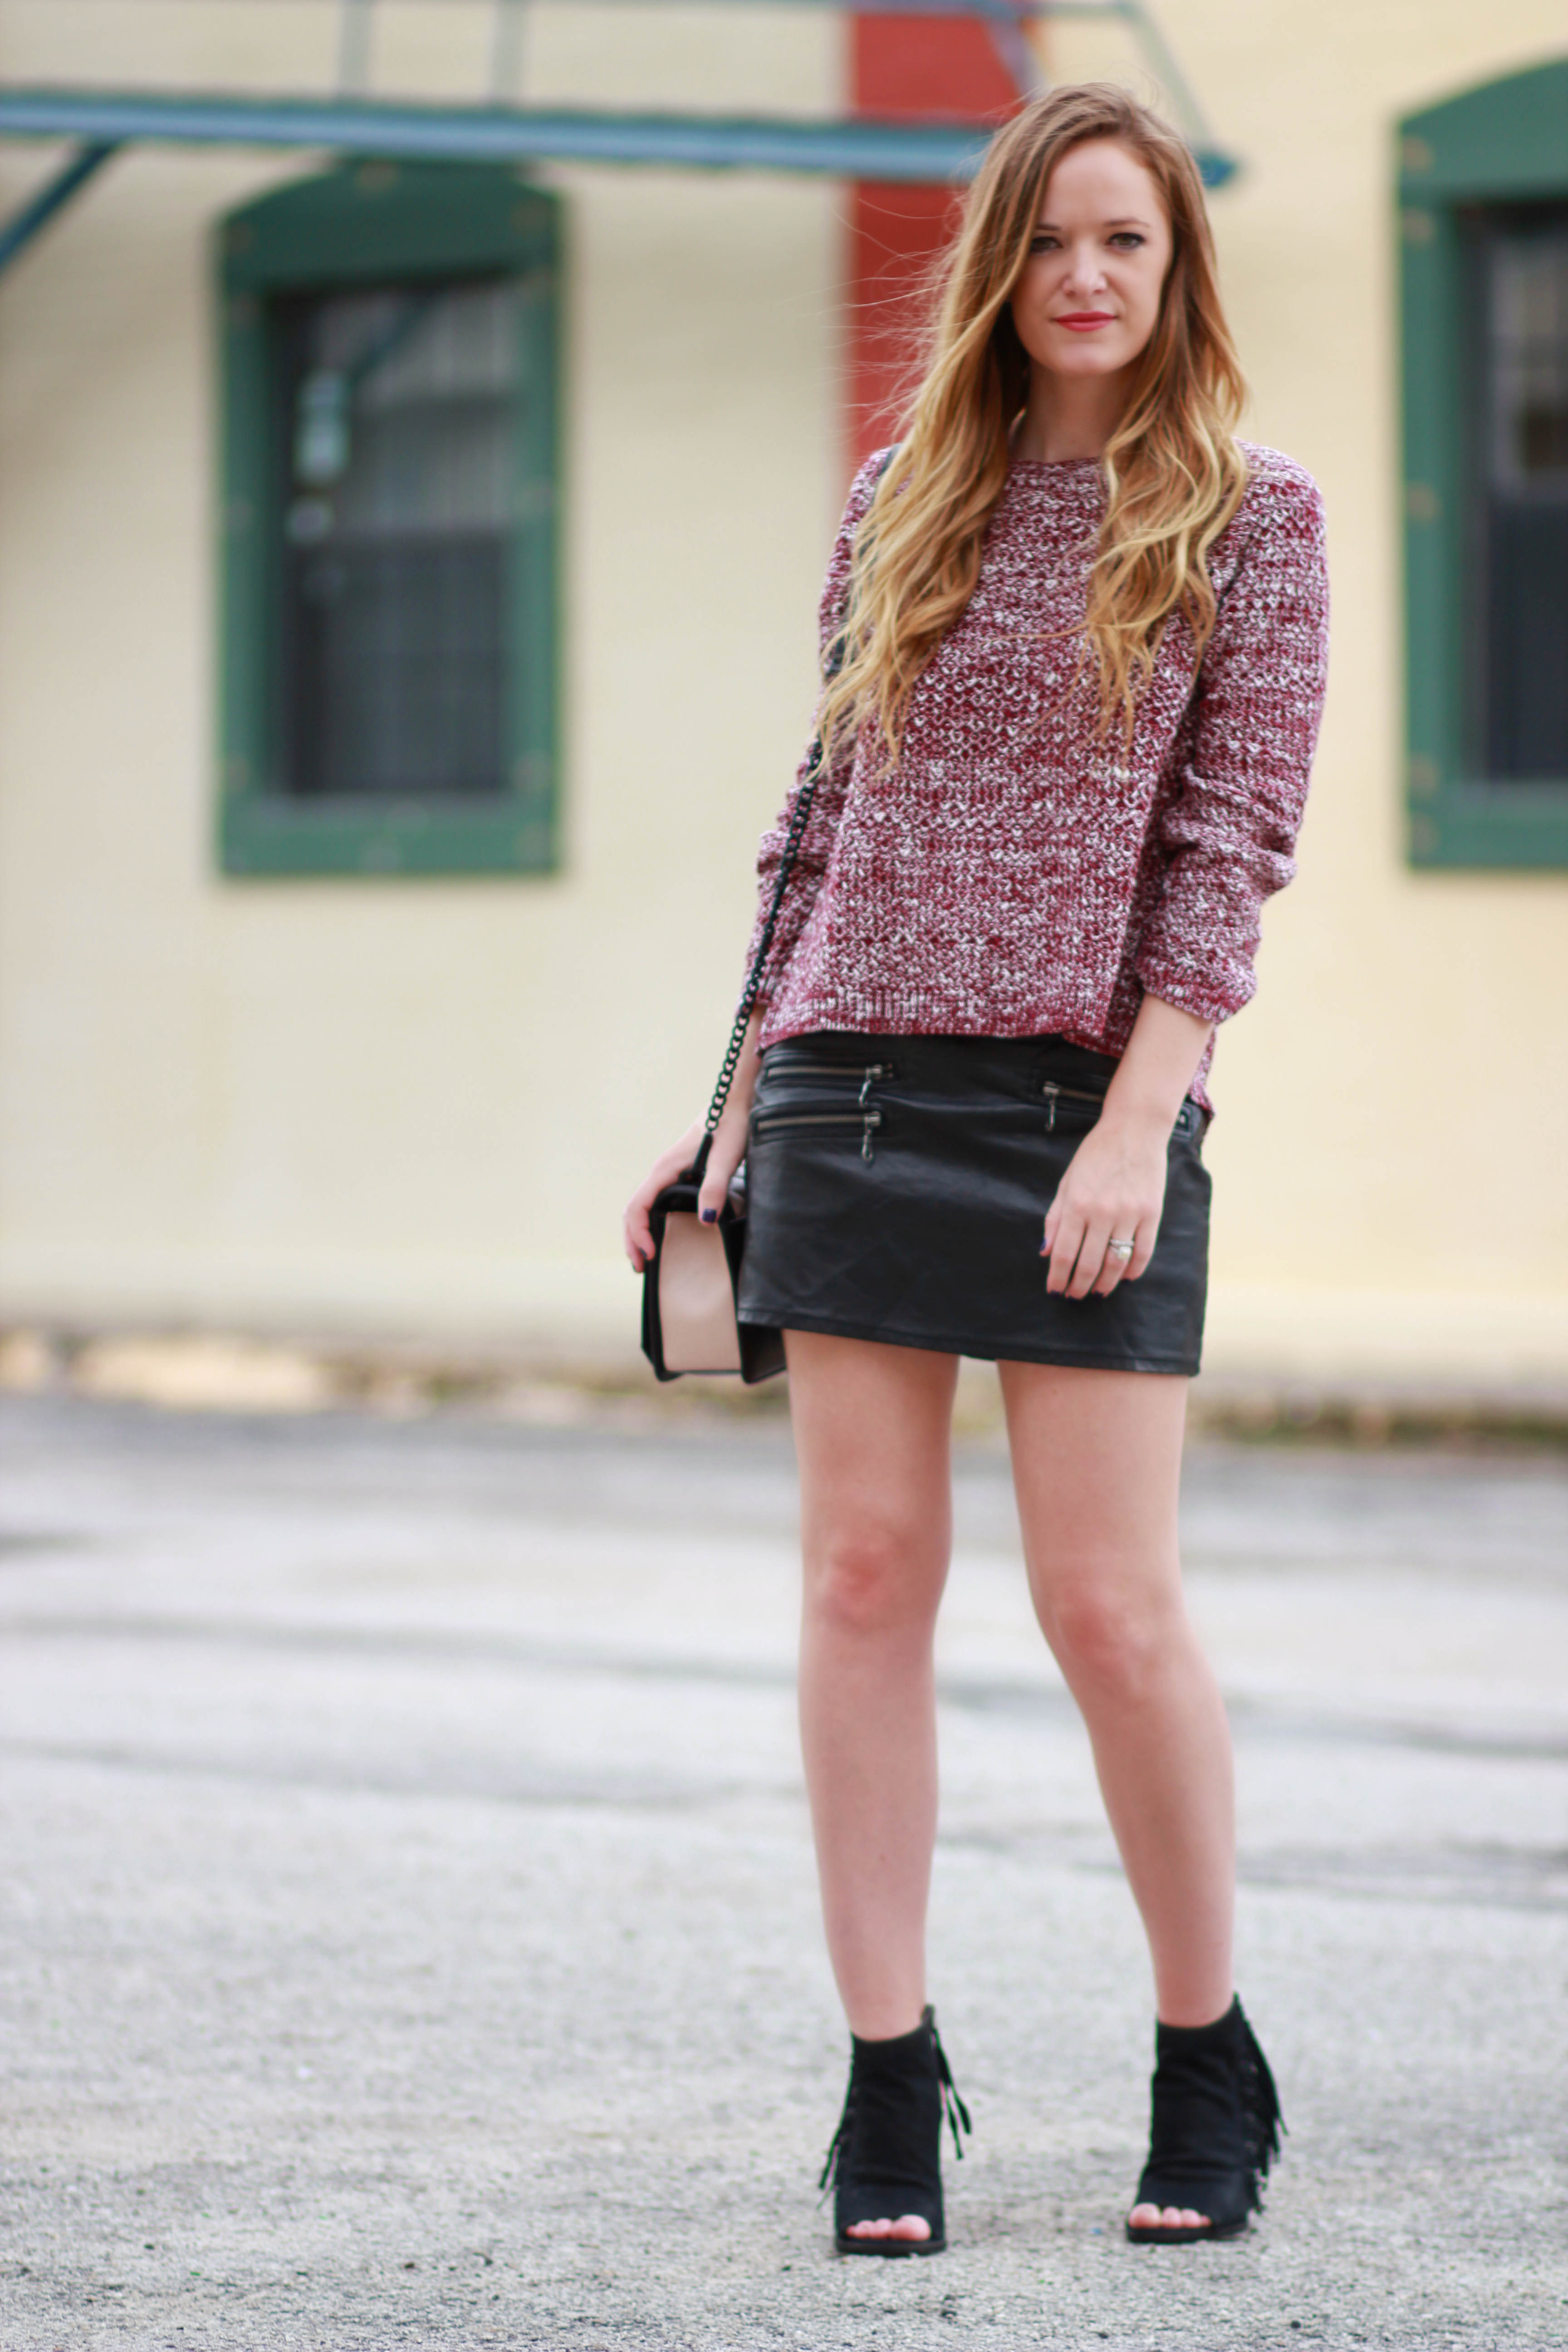 florida, orlando fashion blogger styles tobi sweater with forever 21 leather skirt, fringe dolce vita booties for a casual fall outfit